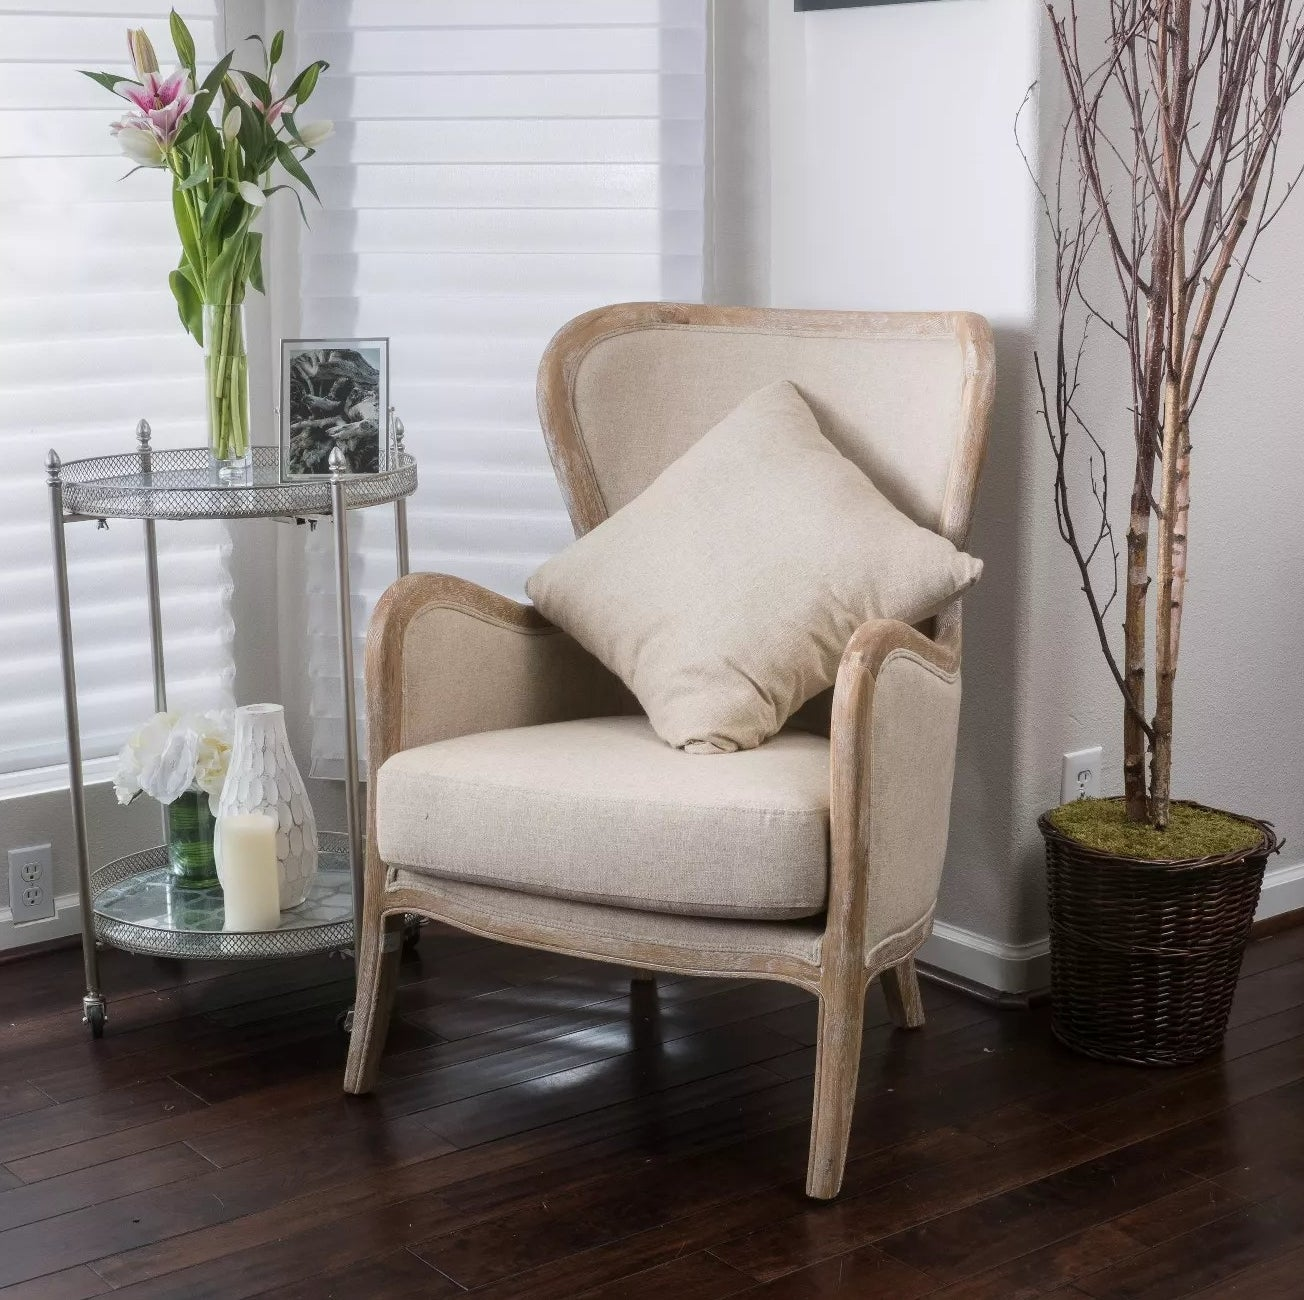 The beige, upholstered wing chair